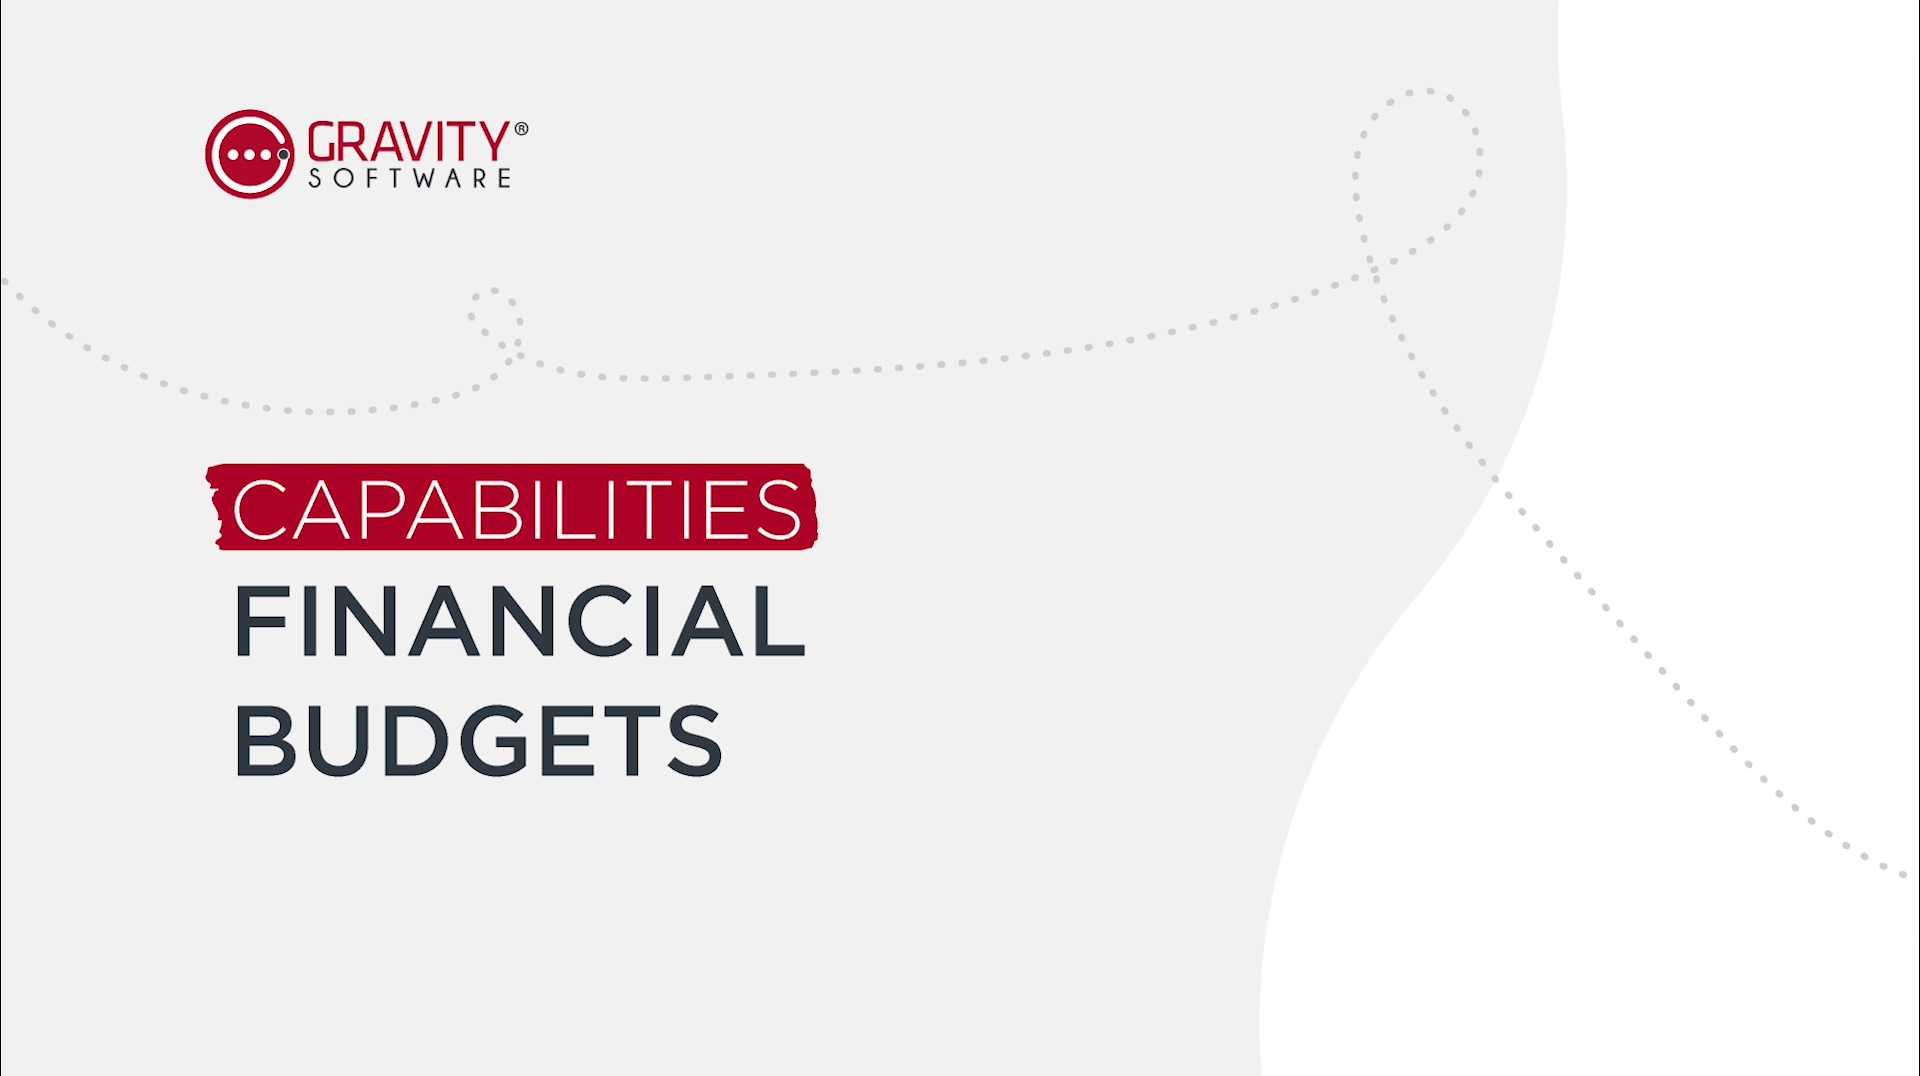 Gravity Software Financial Budgets Capabilities